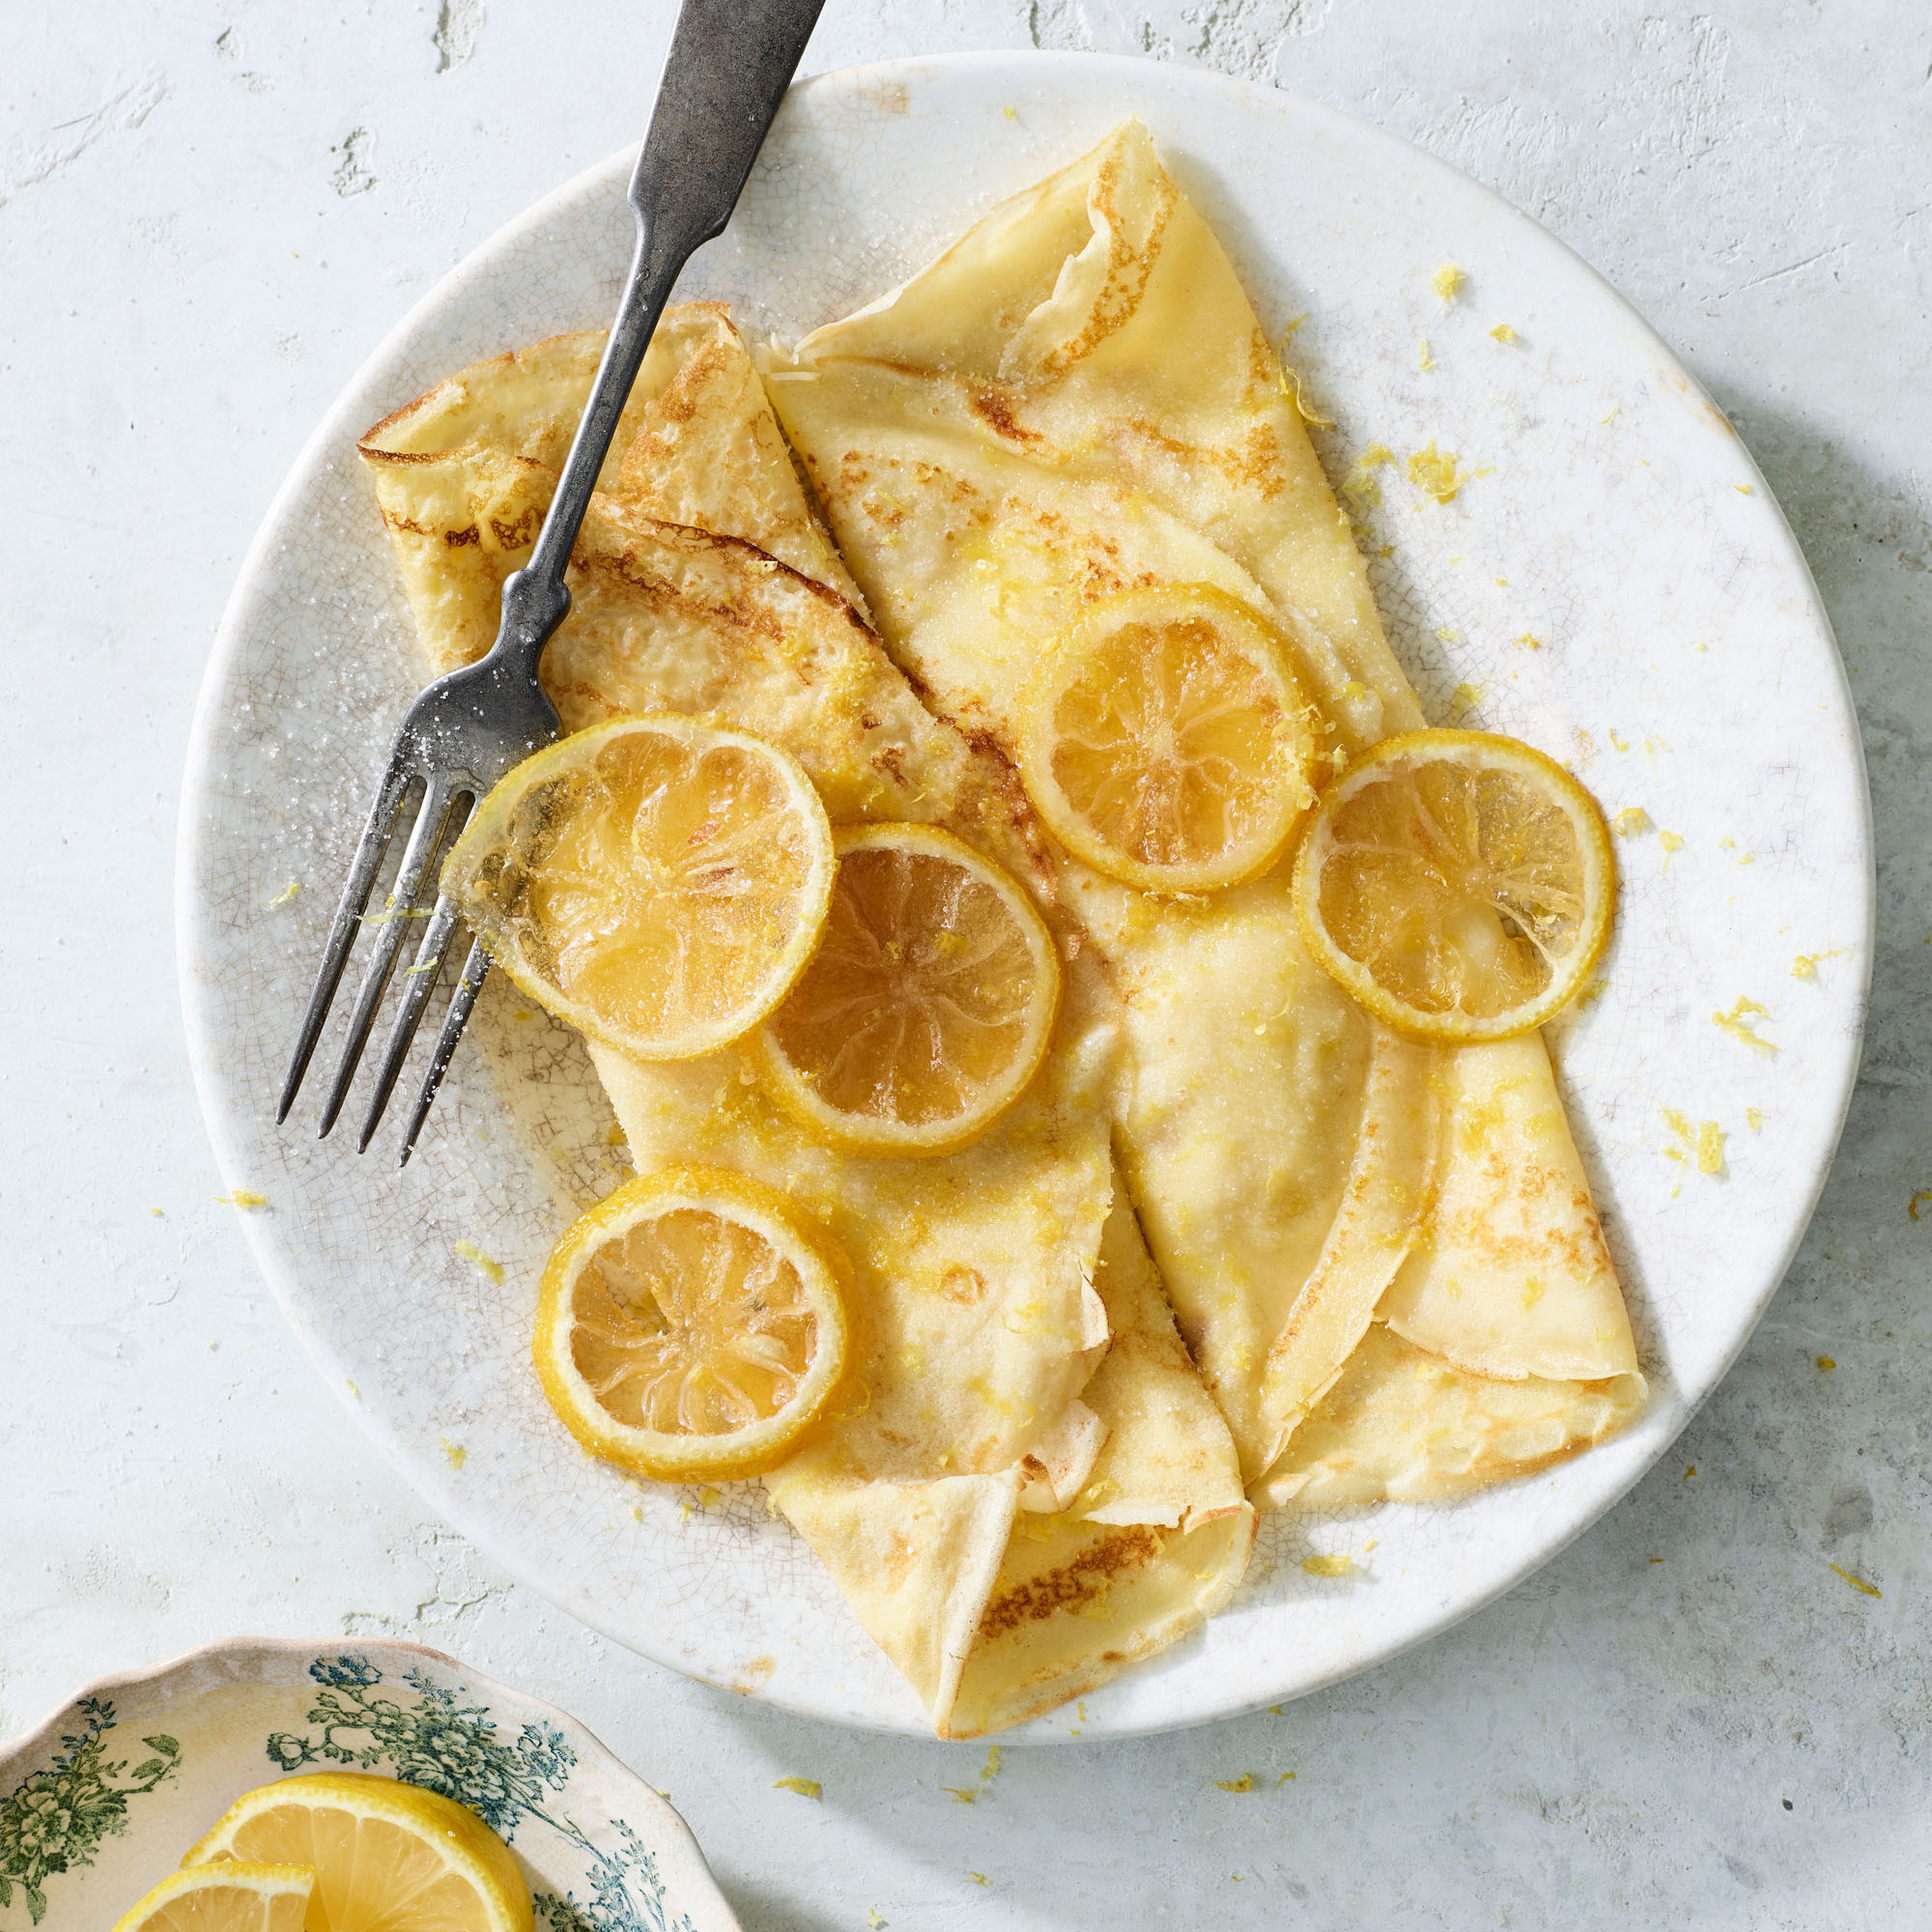 rolled pancakes with lemon sugar and candied lemon slices